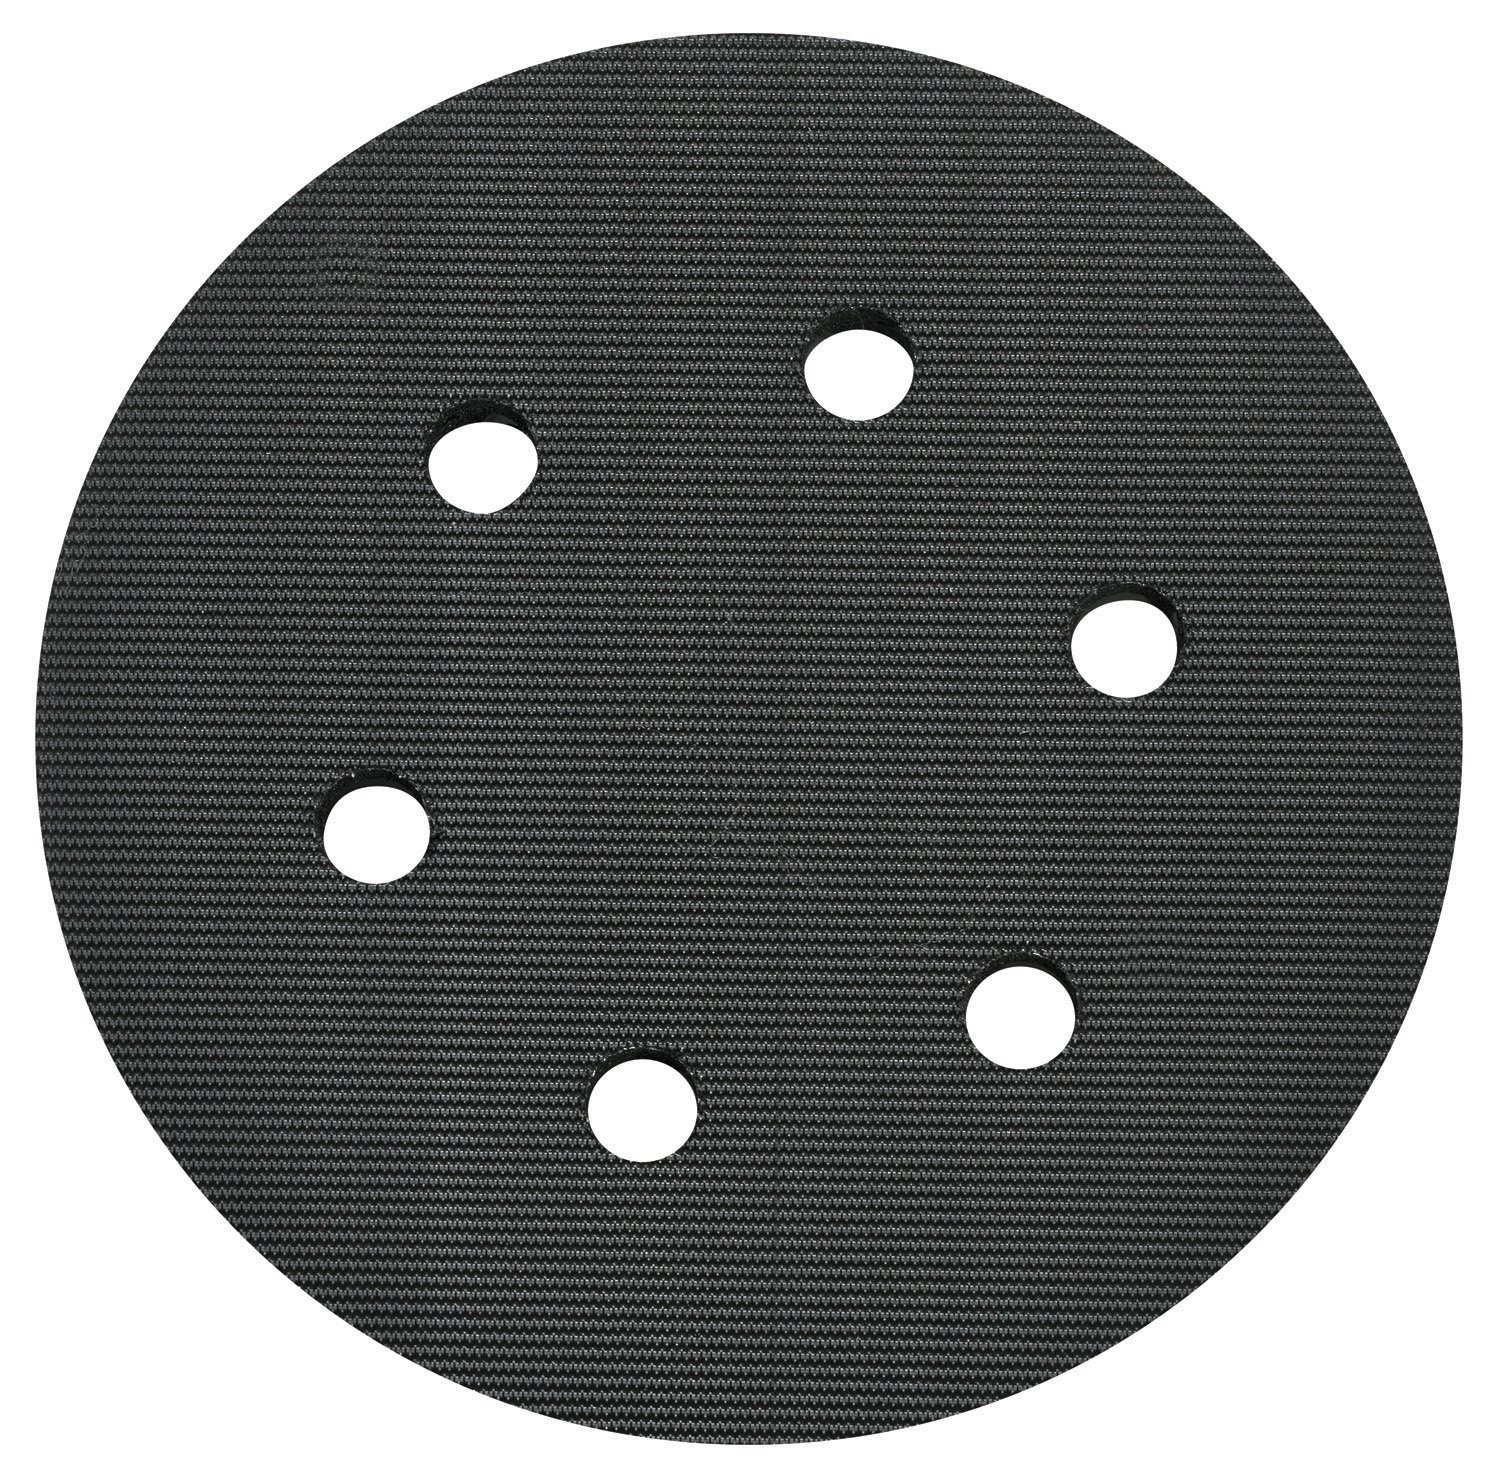 PORTER-CABLE 18002 Contour Hook and loop Pad (6-Inch)